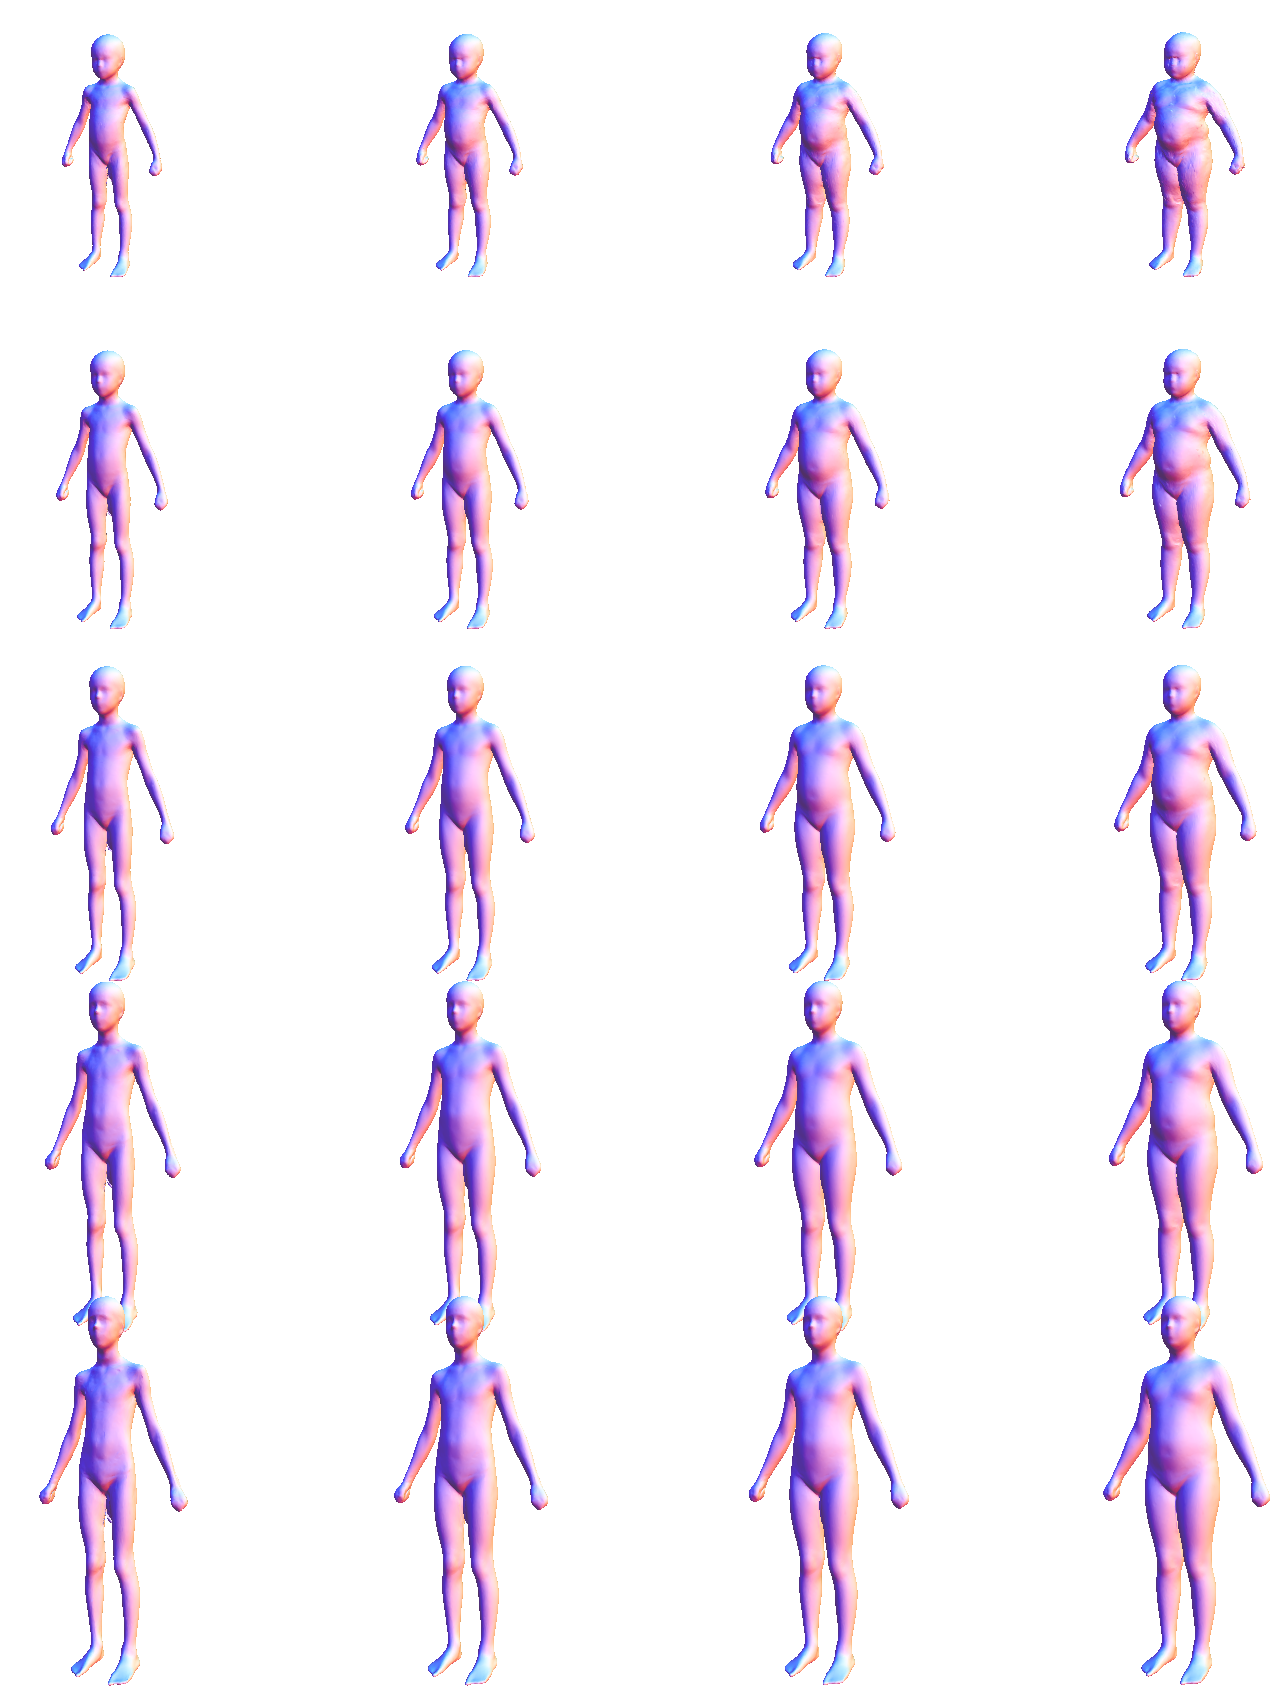 whole body surface anthropometry